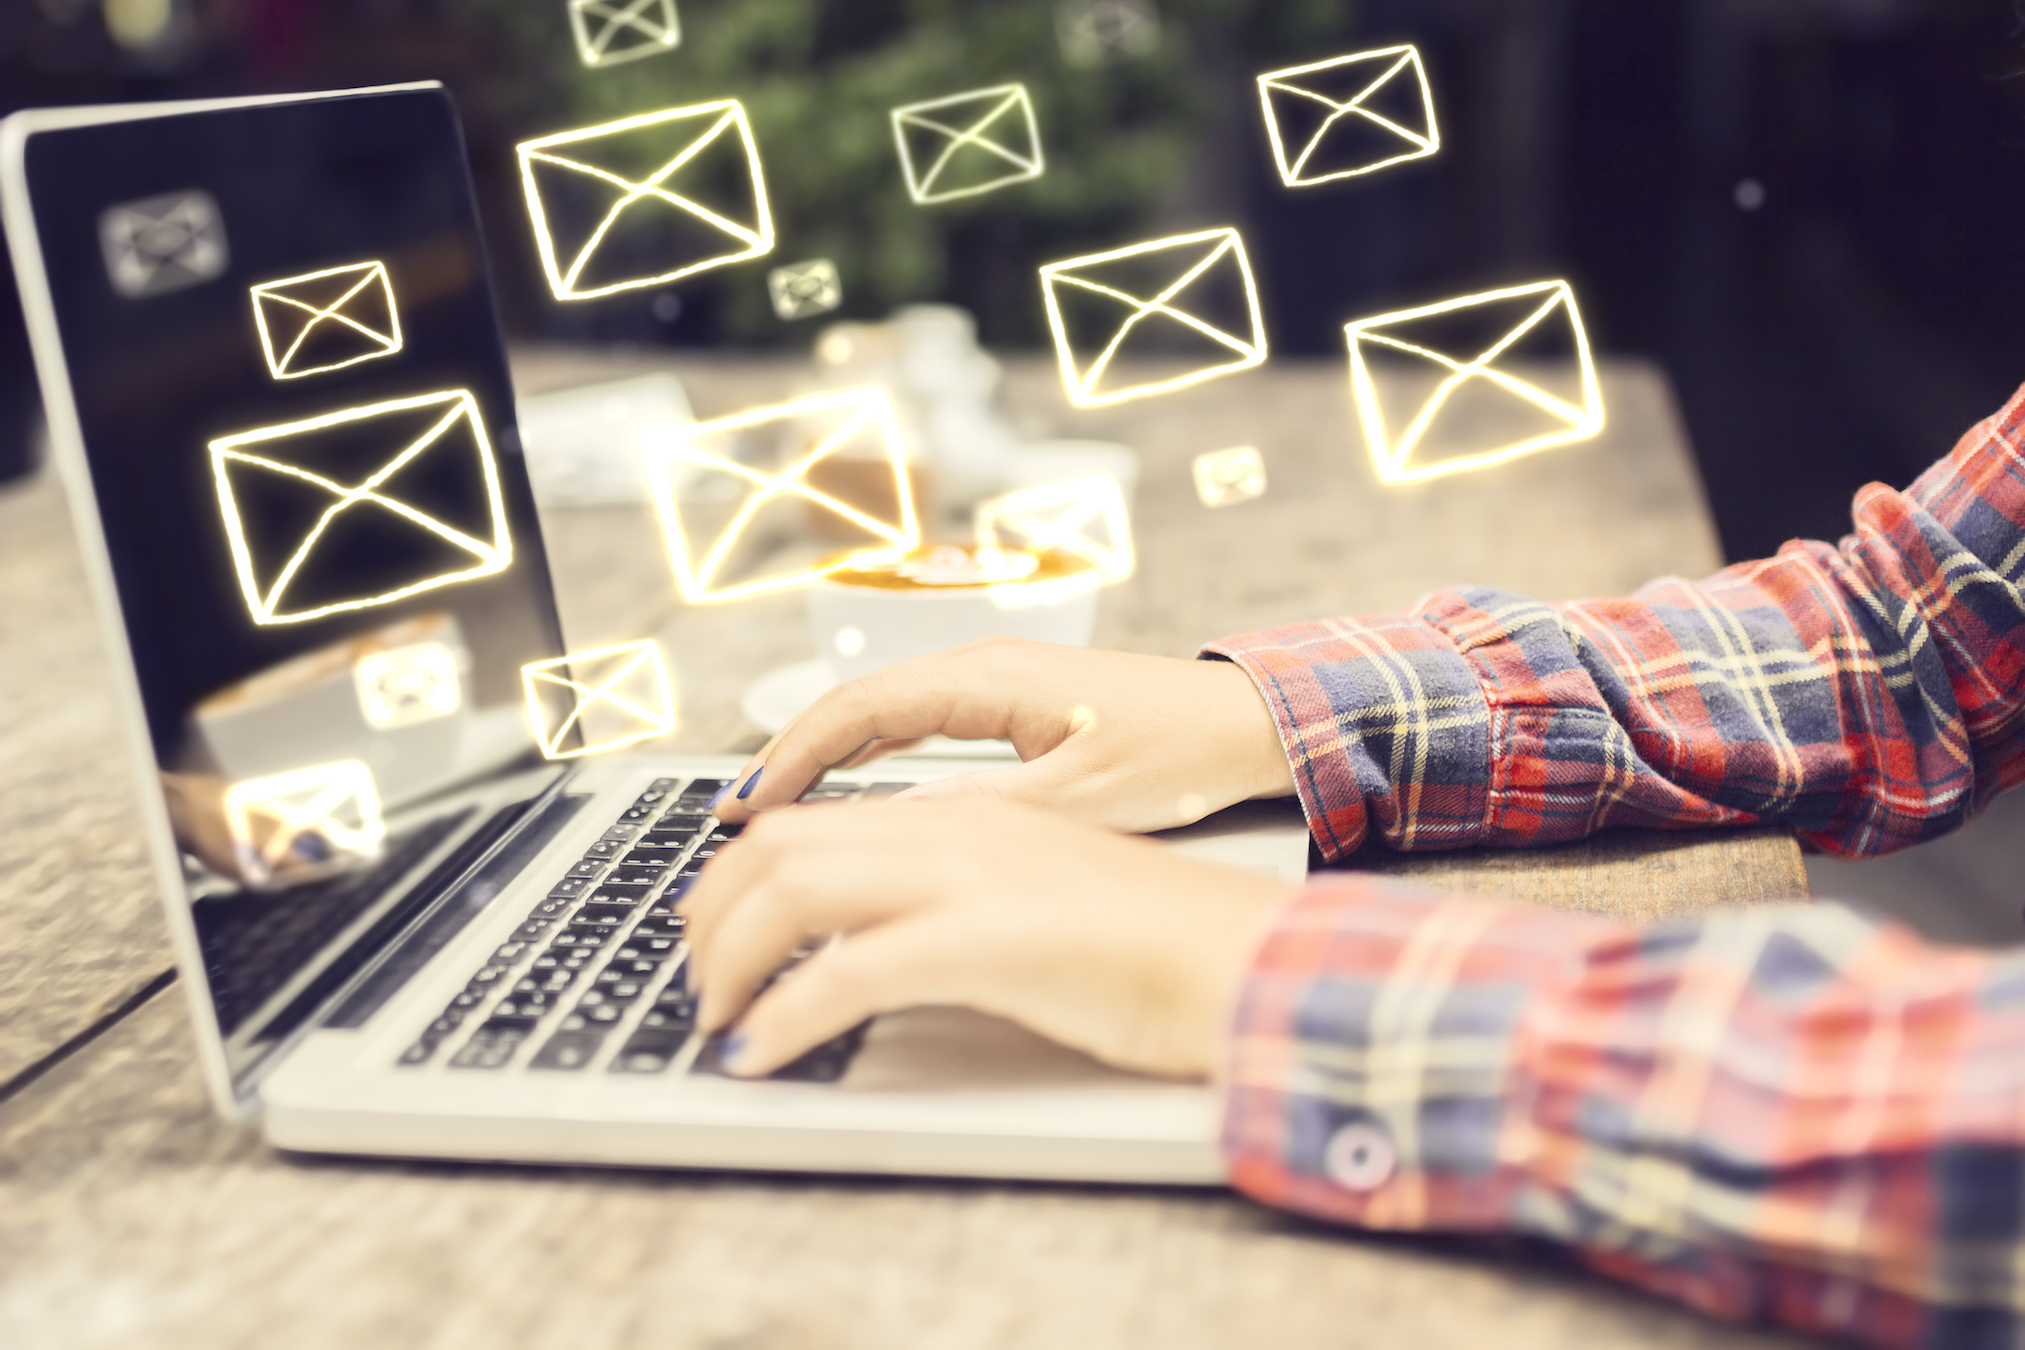 Adobe recently published their fourth annual consumer email survey and found what email phrases are the most irritating to office employees.